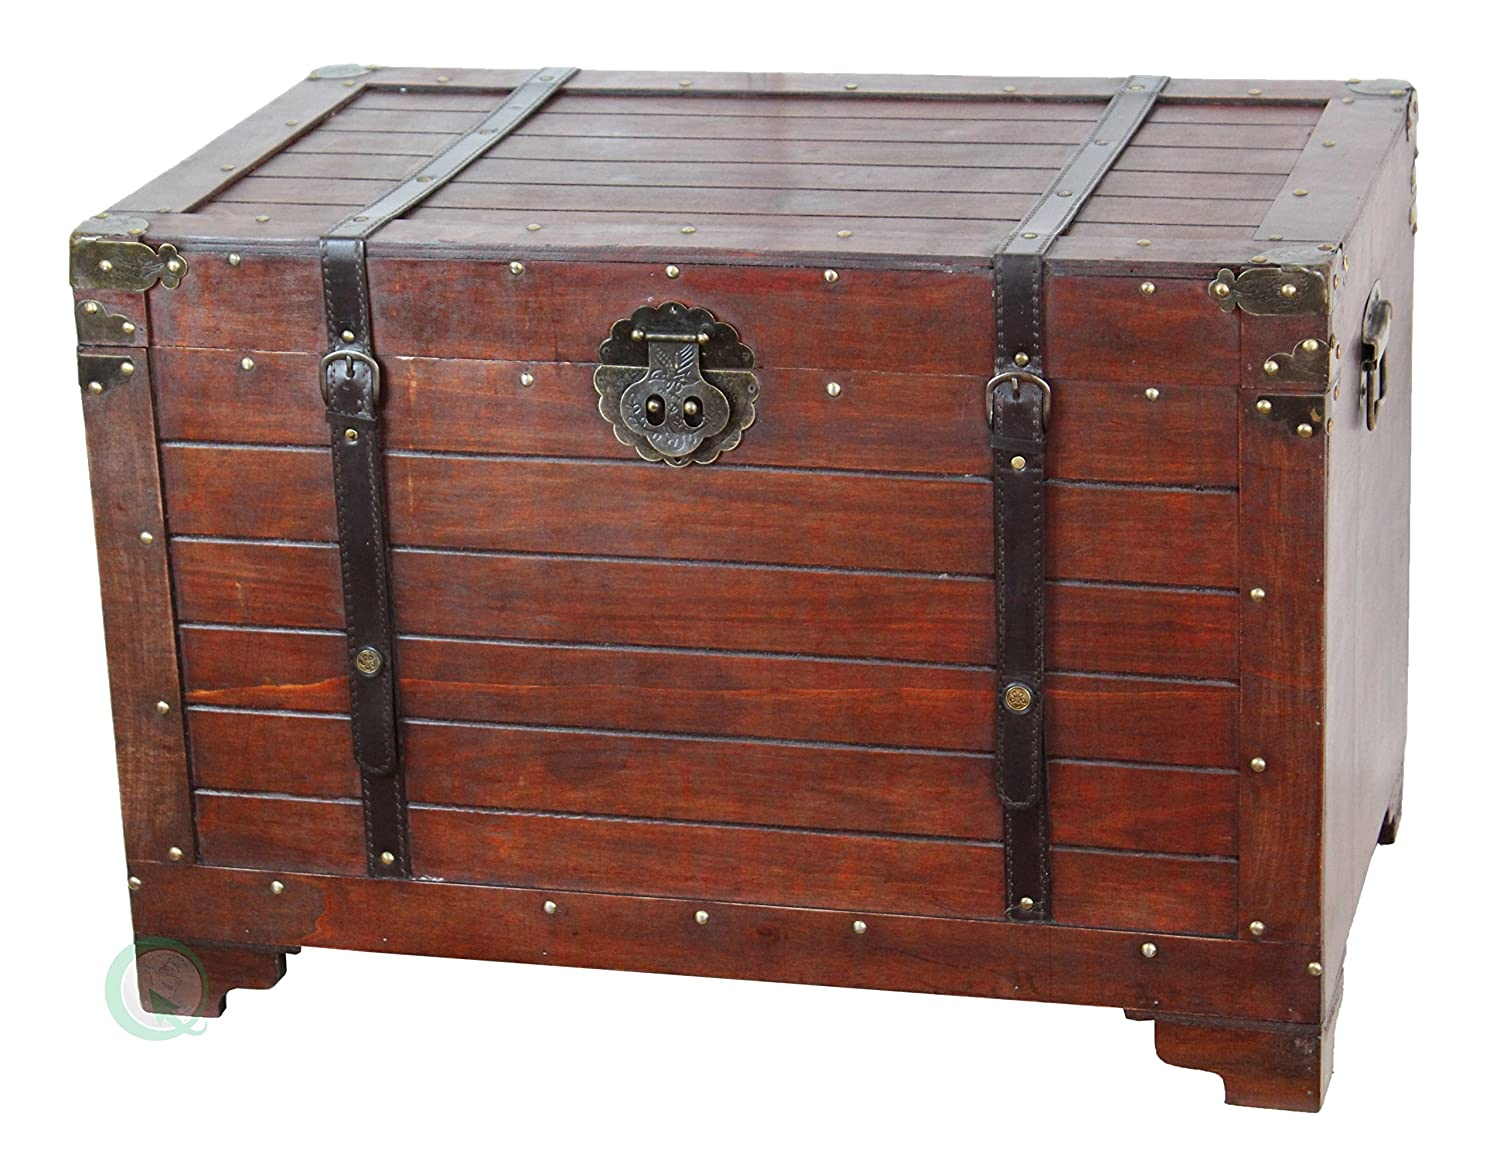 Amazon.com: Vintiquewise(TM) Old Fashioned Wooden Storage Treasure ...